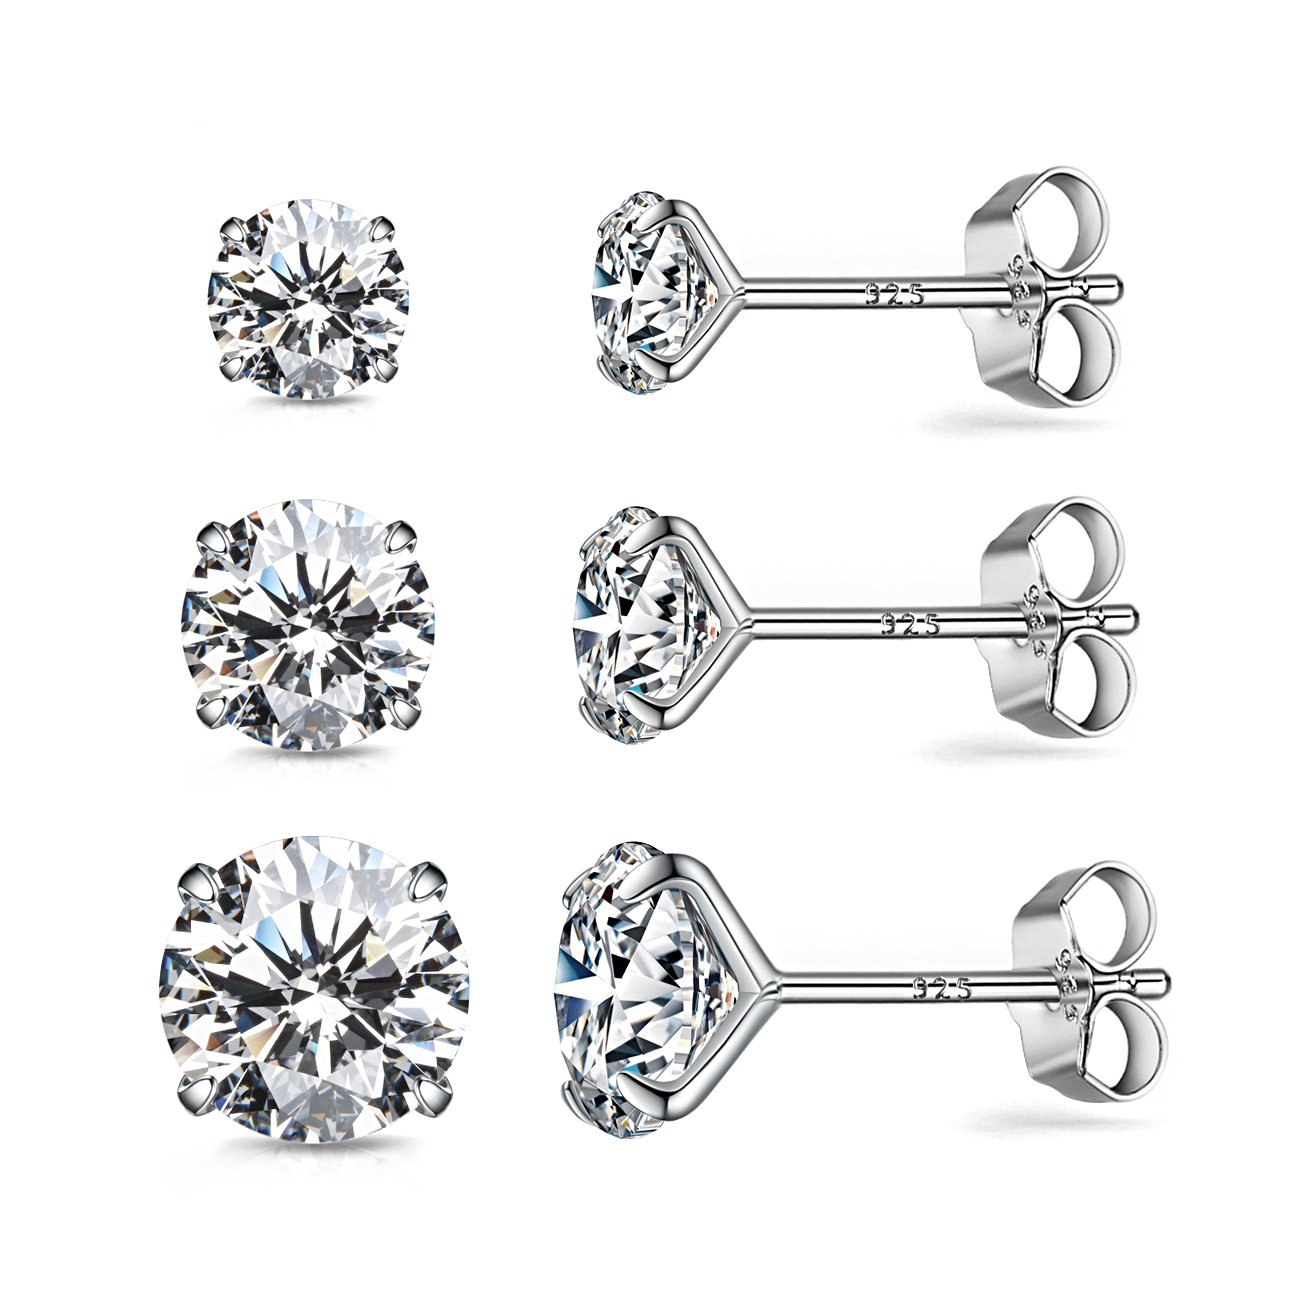 CZ Stud Earrings Sterling Silver 18K White Gold Plated Round Cubic Zirconia Hypoallergenic Set(3 Pairs)